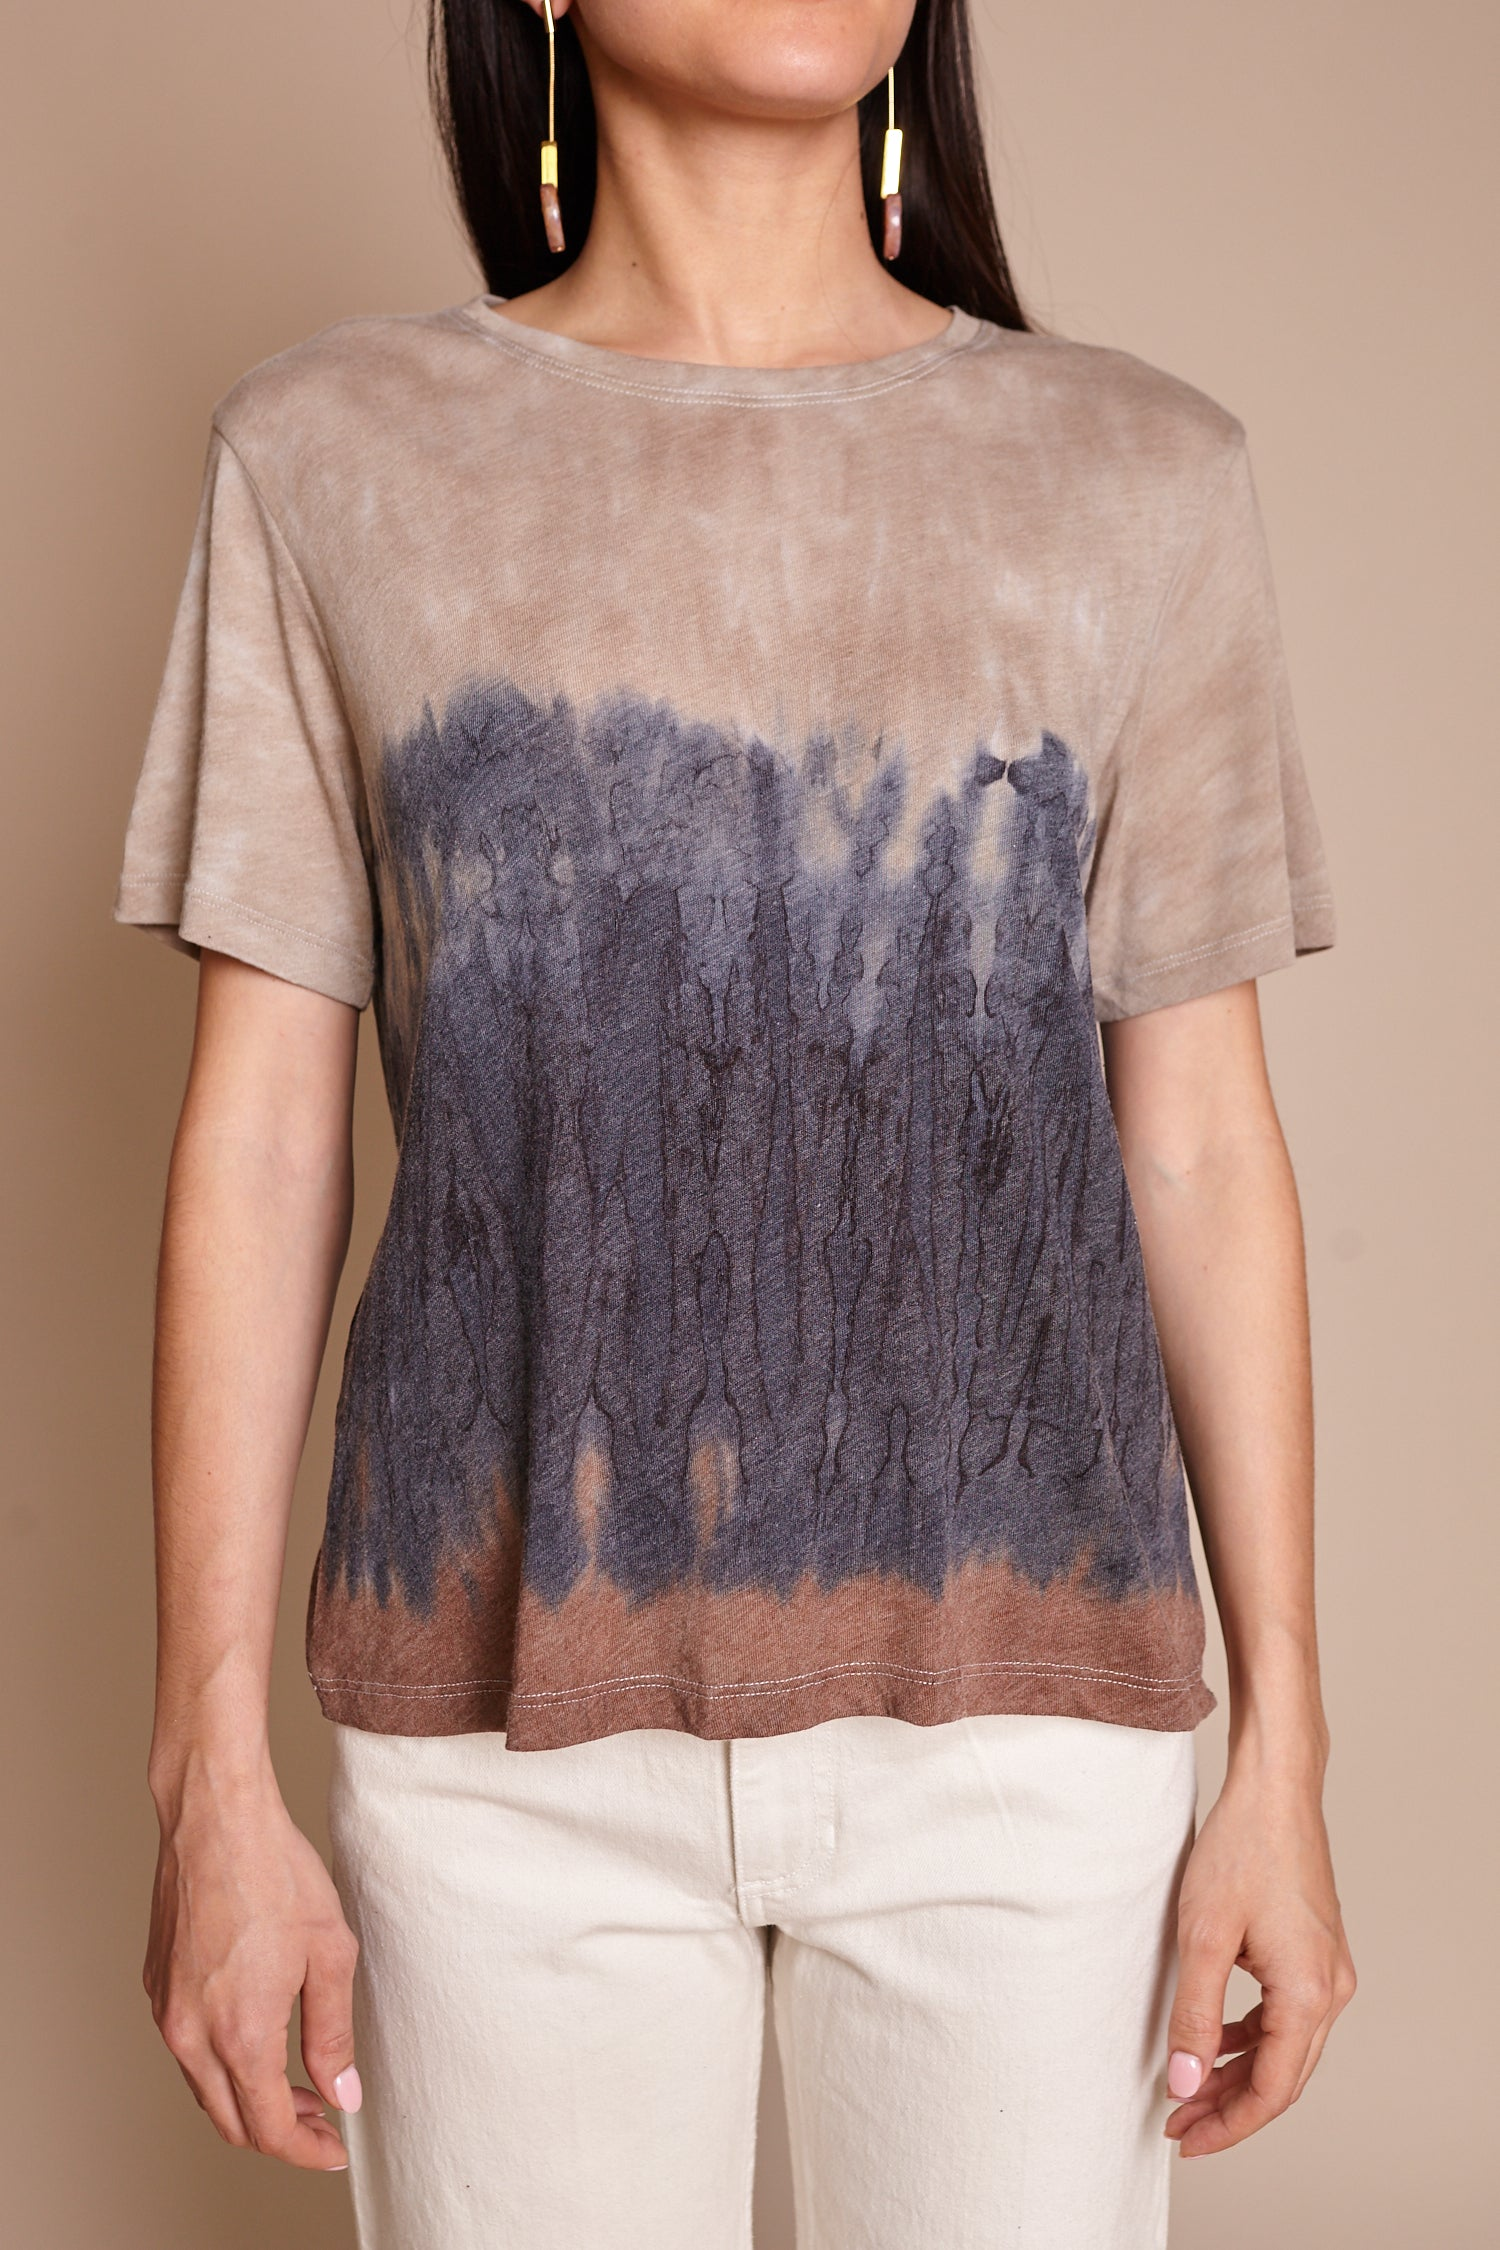 Raquel Allegra Boxy Tee in Caves Tie Dye - Vert & Vogue